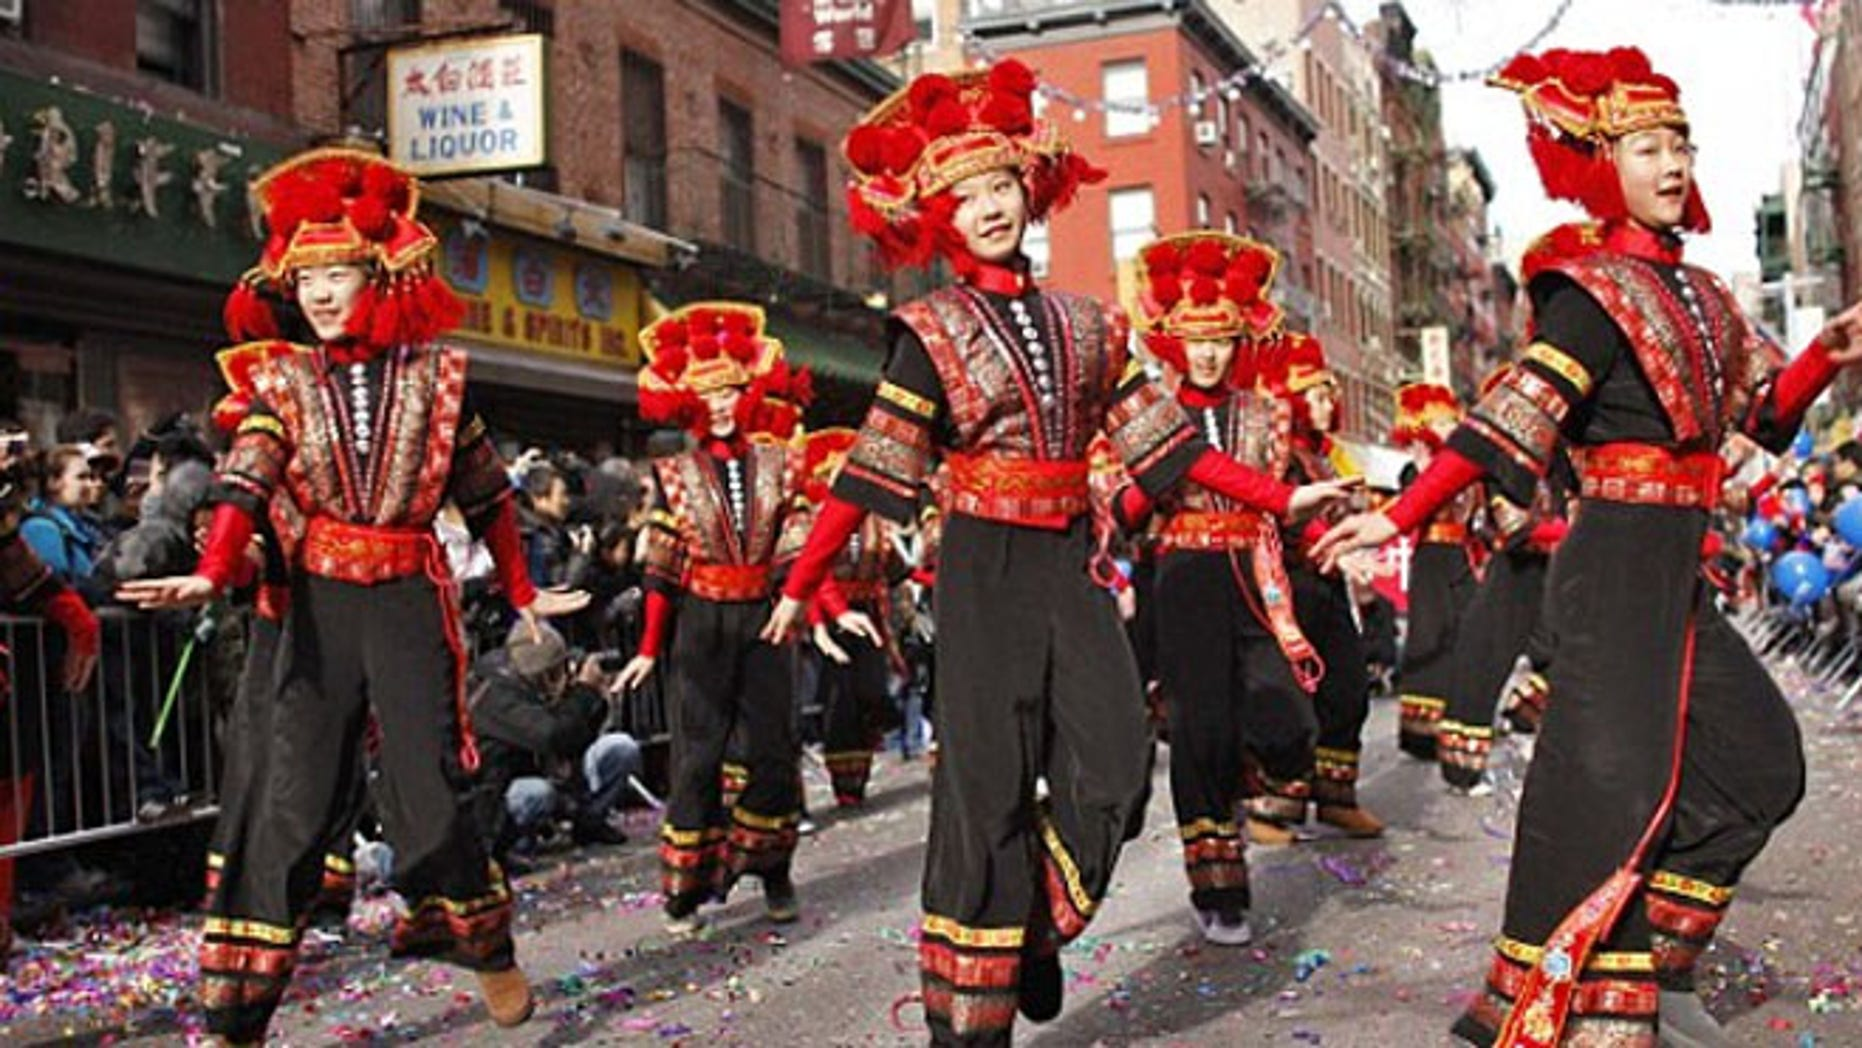 Hundreds of thousands of people head to New York City each year to watch the Chinese Lunar New Year parade in Chinatown, and a growing number of them are from mainland China.